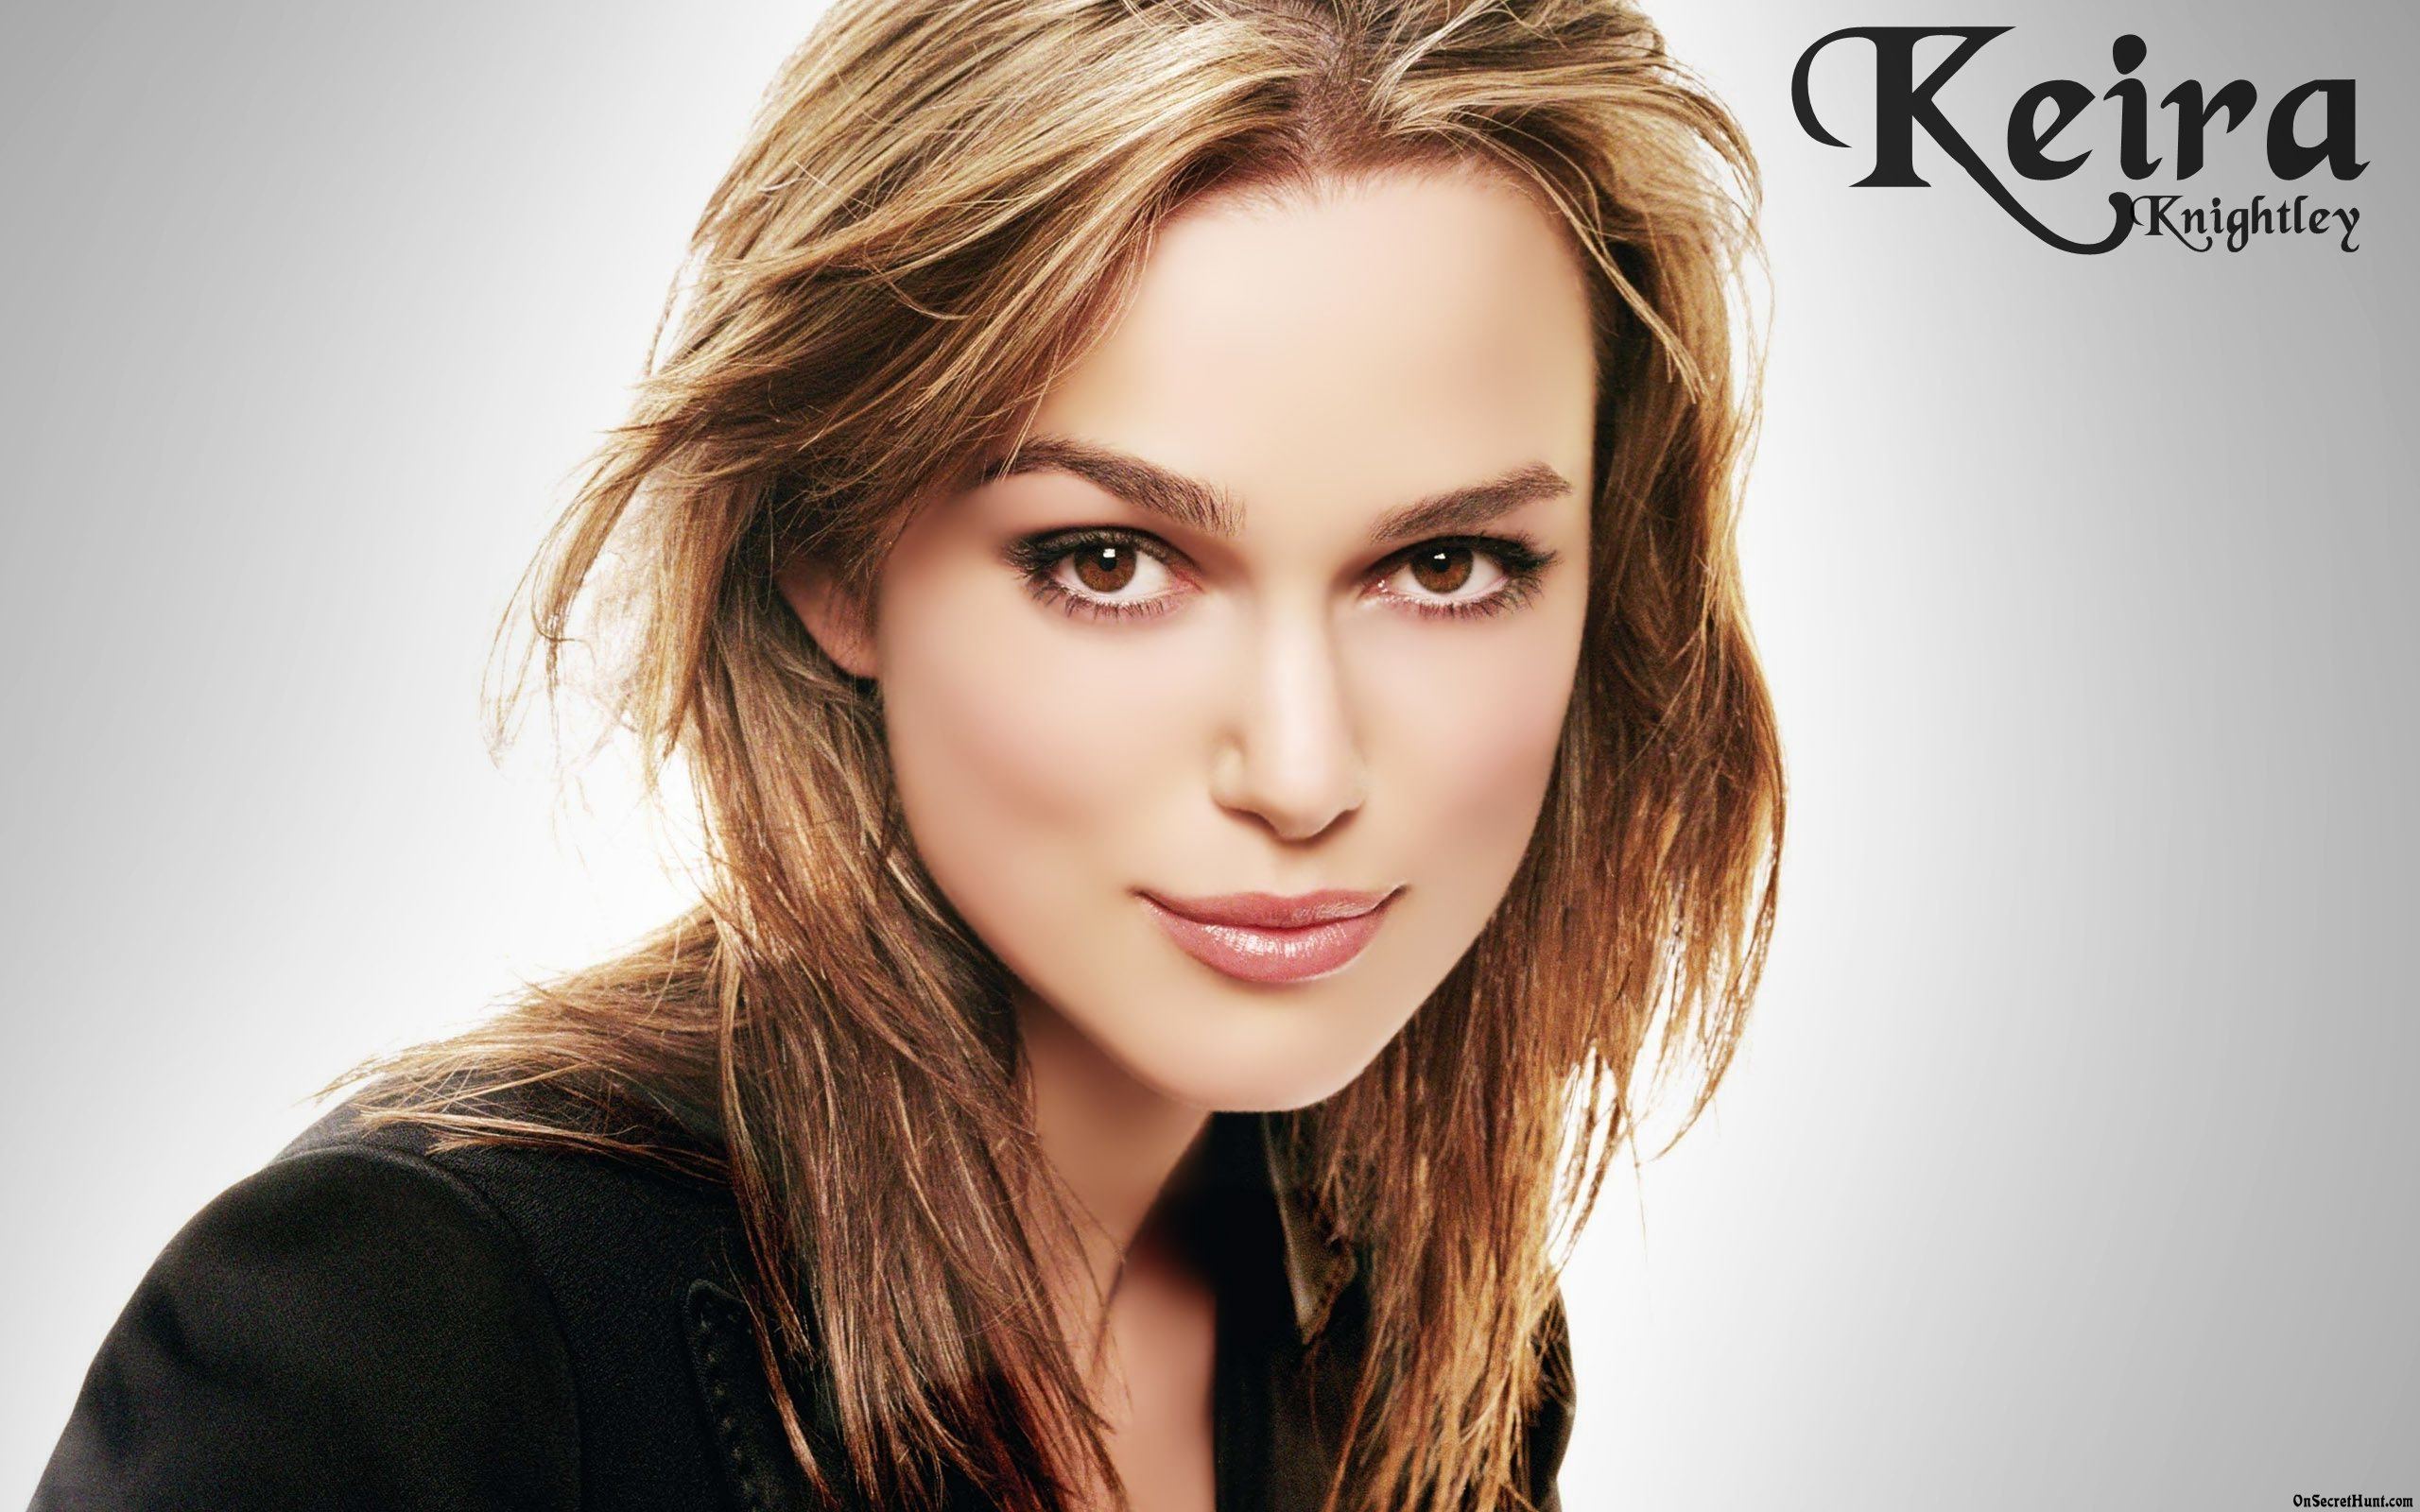 Full HD Pics Keira Knightley 0.45 Mb